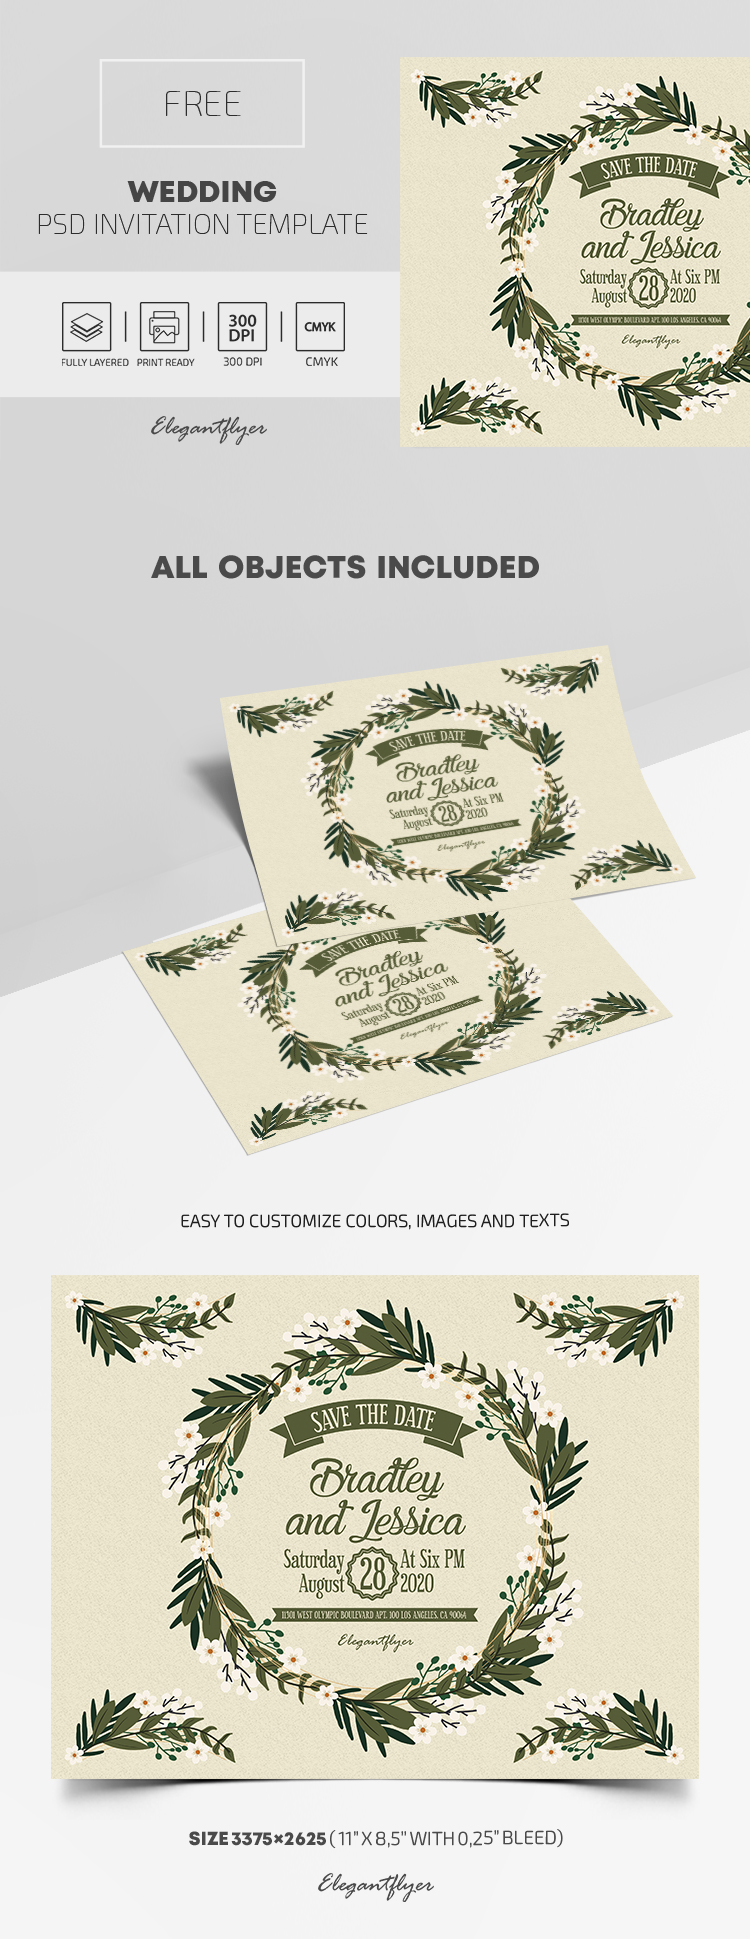 Free Psd Wedding Invitation Template By Elegantflyer